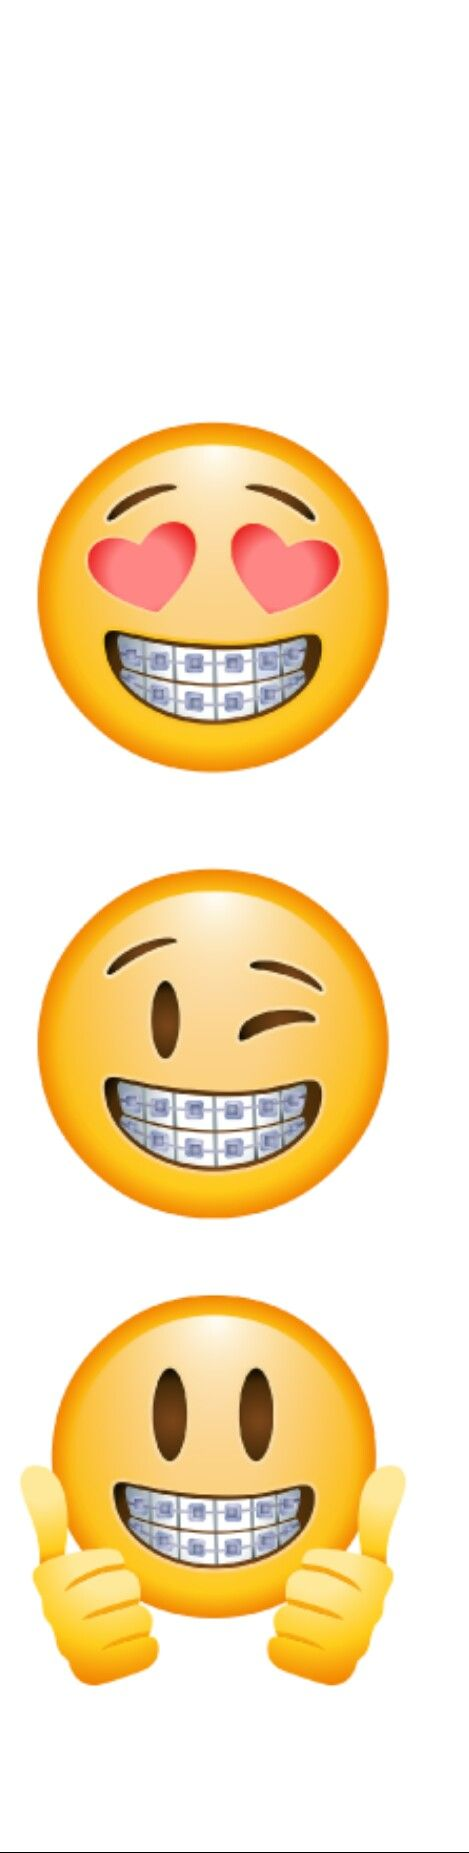 Emoji with brackets